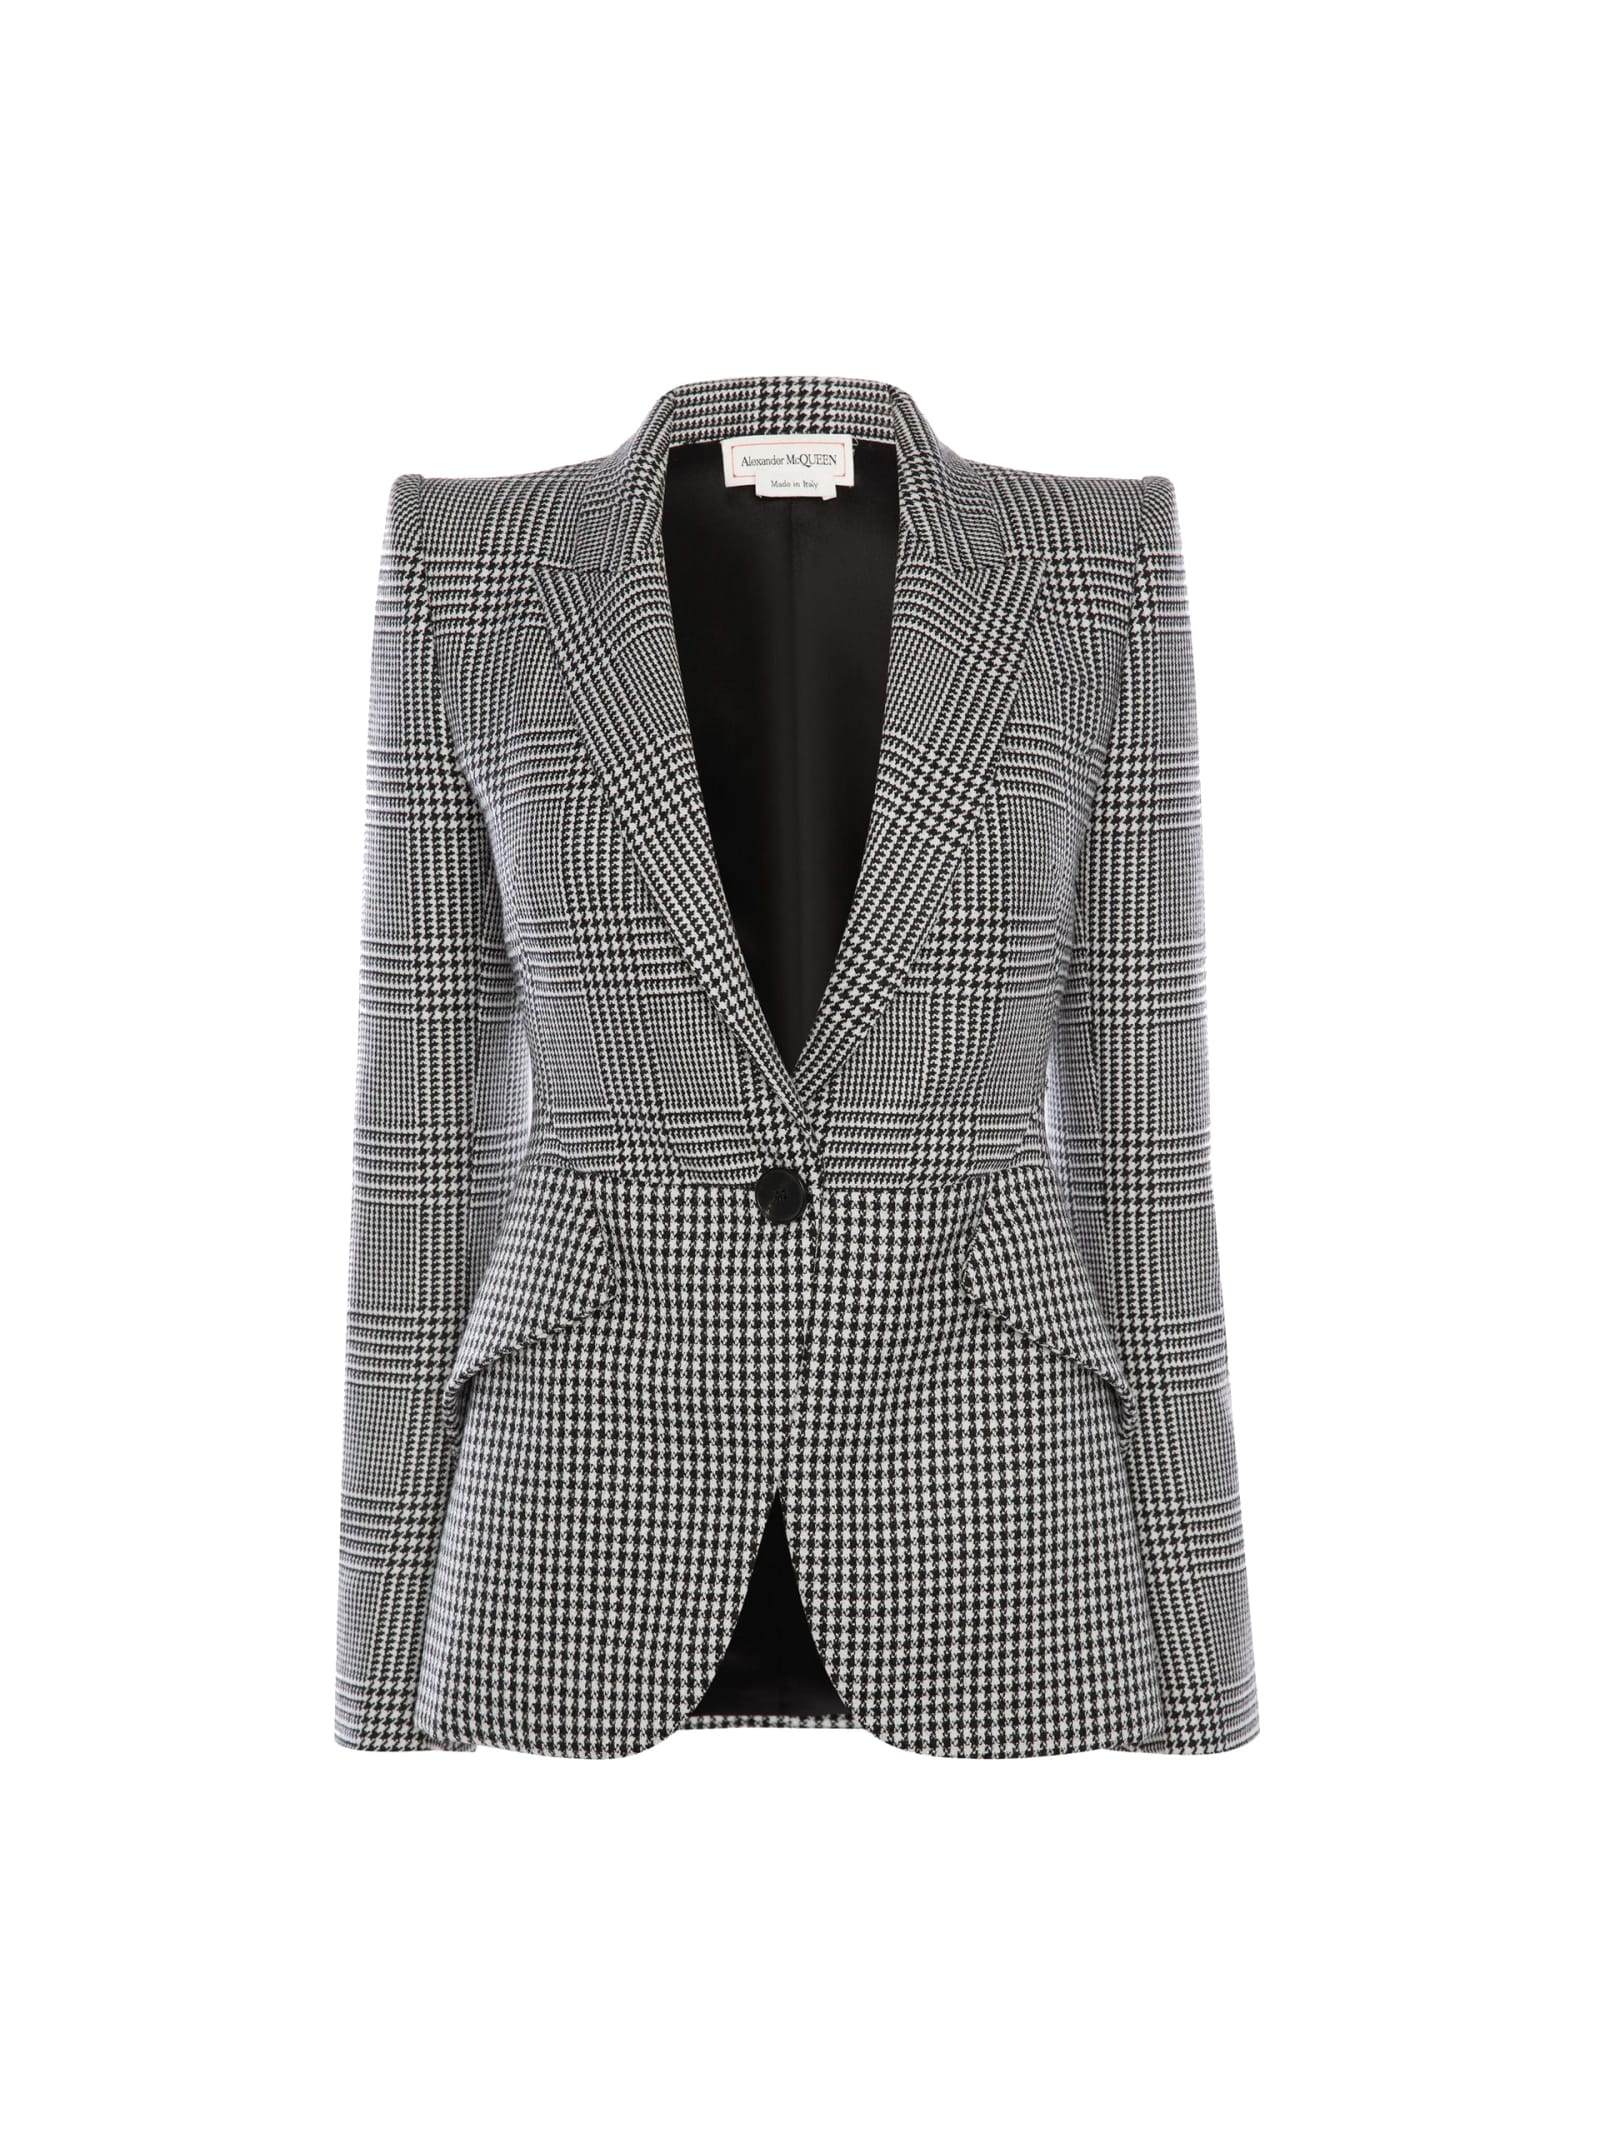 Alexander McQueen Narrow Prince Of Wales Wool Jacket